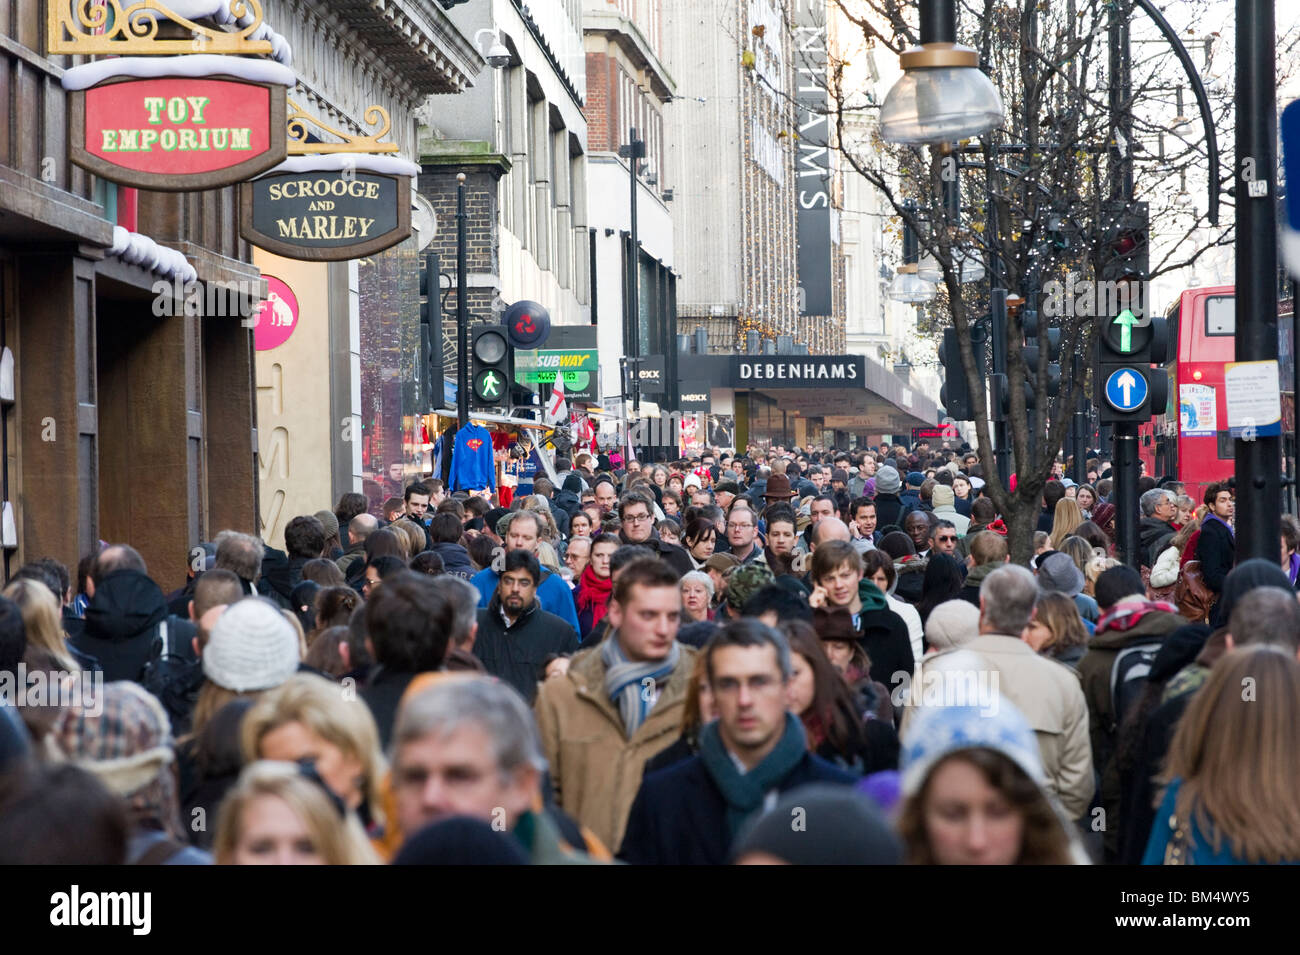 Christmas shoppers on Oxford Street, London, England, UK Stock Photo